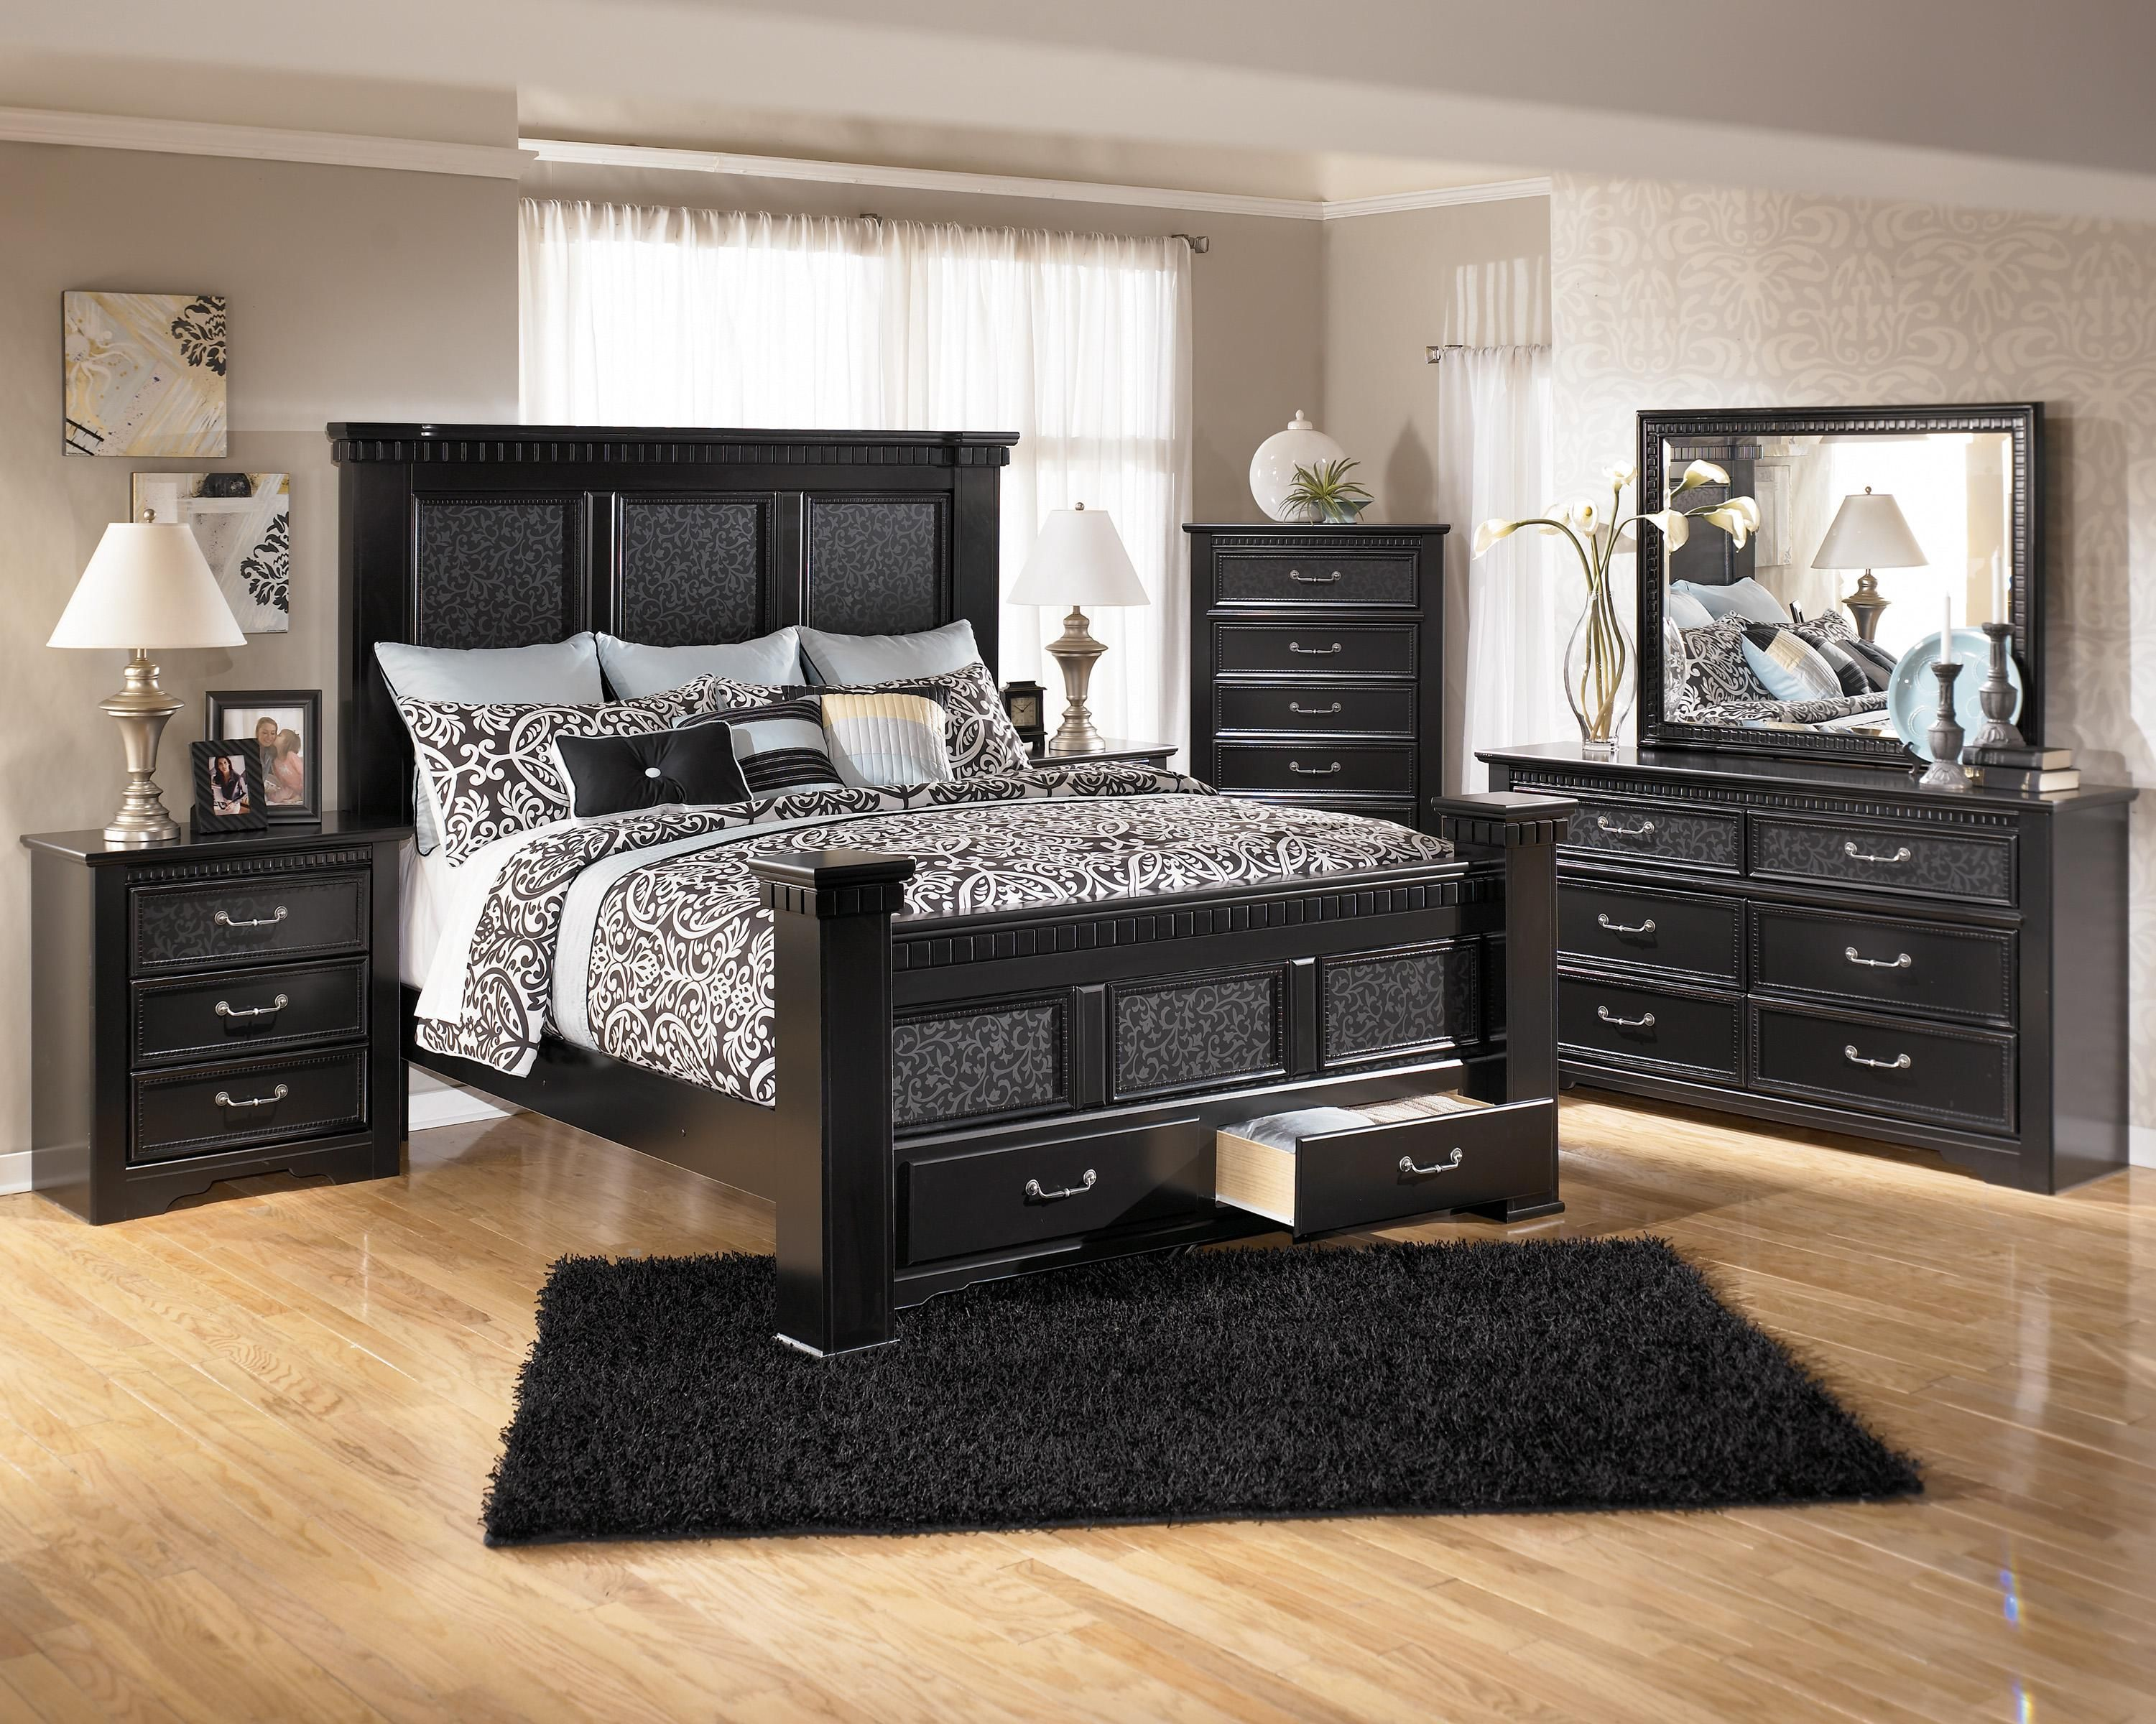 Ashley modern bedroom furniture - Ashley Furniture Cavallino Bedroom Set With Mansion Poster Bed Storage Footboard Bed Only 799 95